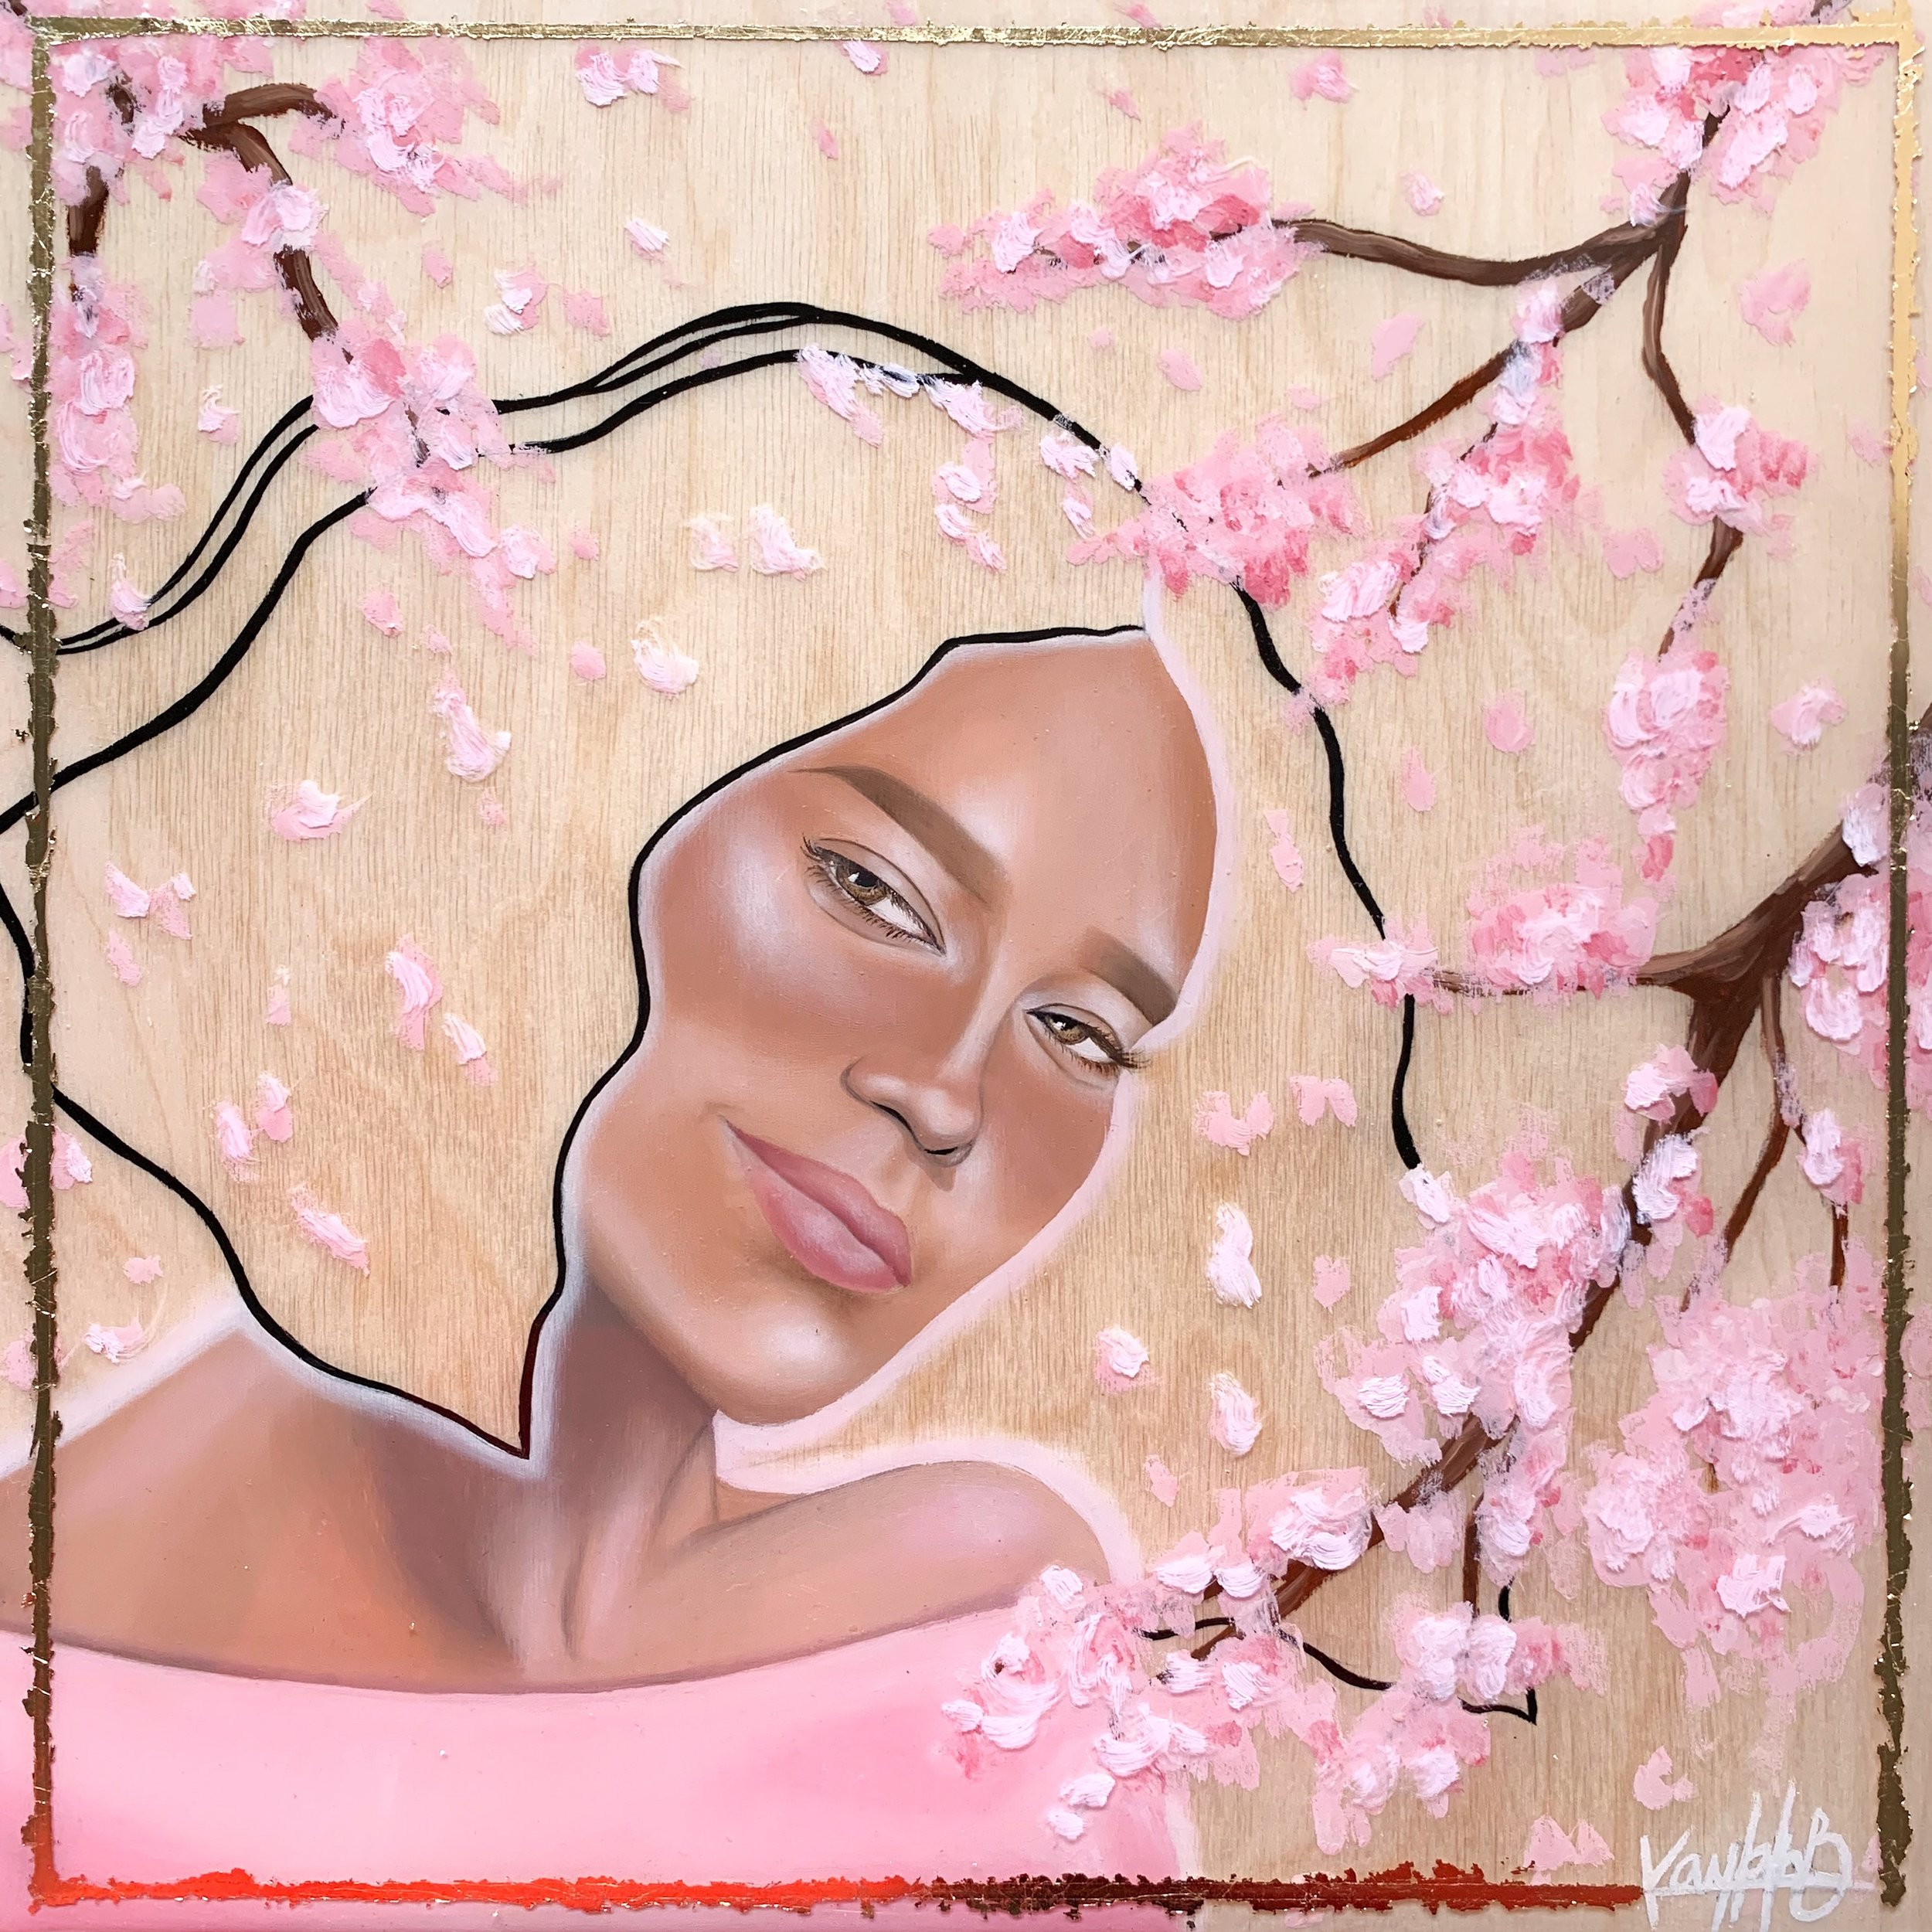 Sakura - Oils, mixed media and resin on panel.12x12 inches2019$350For inquiries, please send an e-mail to kayanhbennett@gmail.com